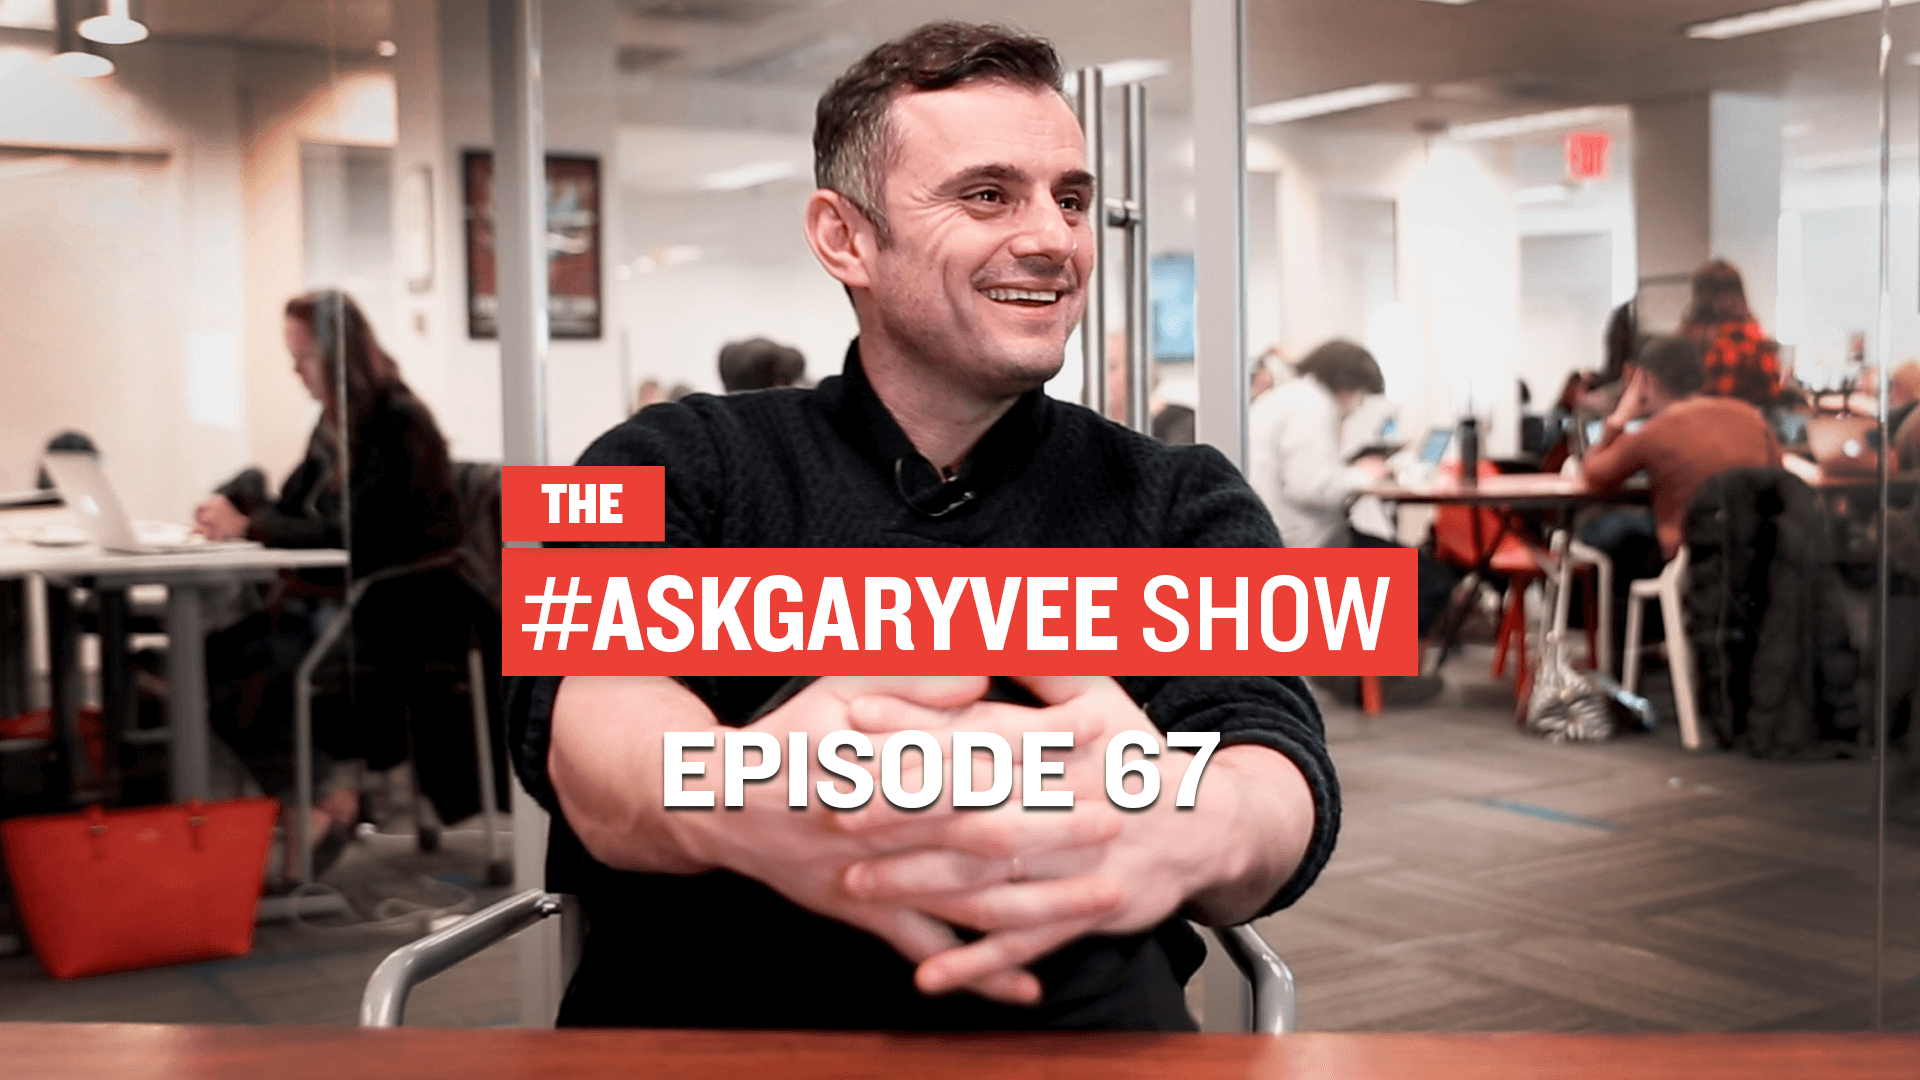 #AskGaryVee Episode 67